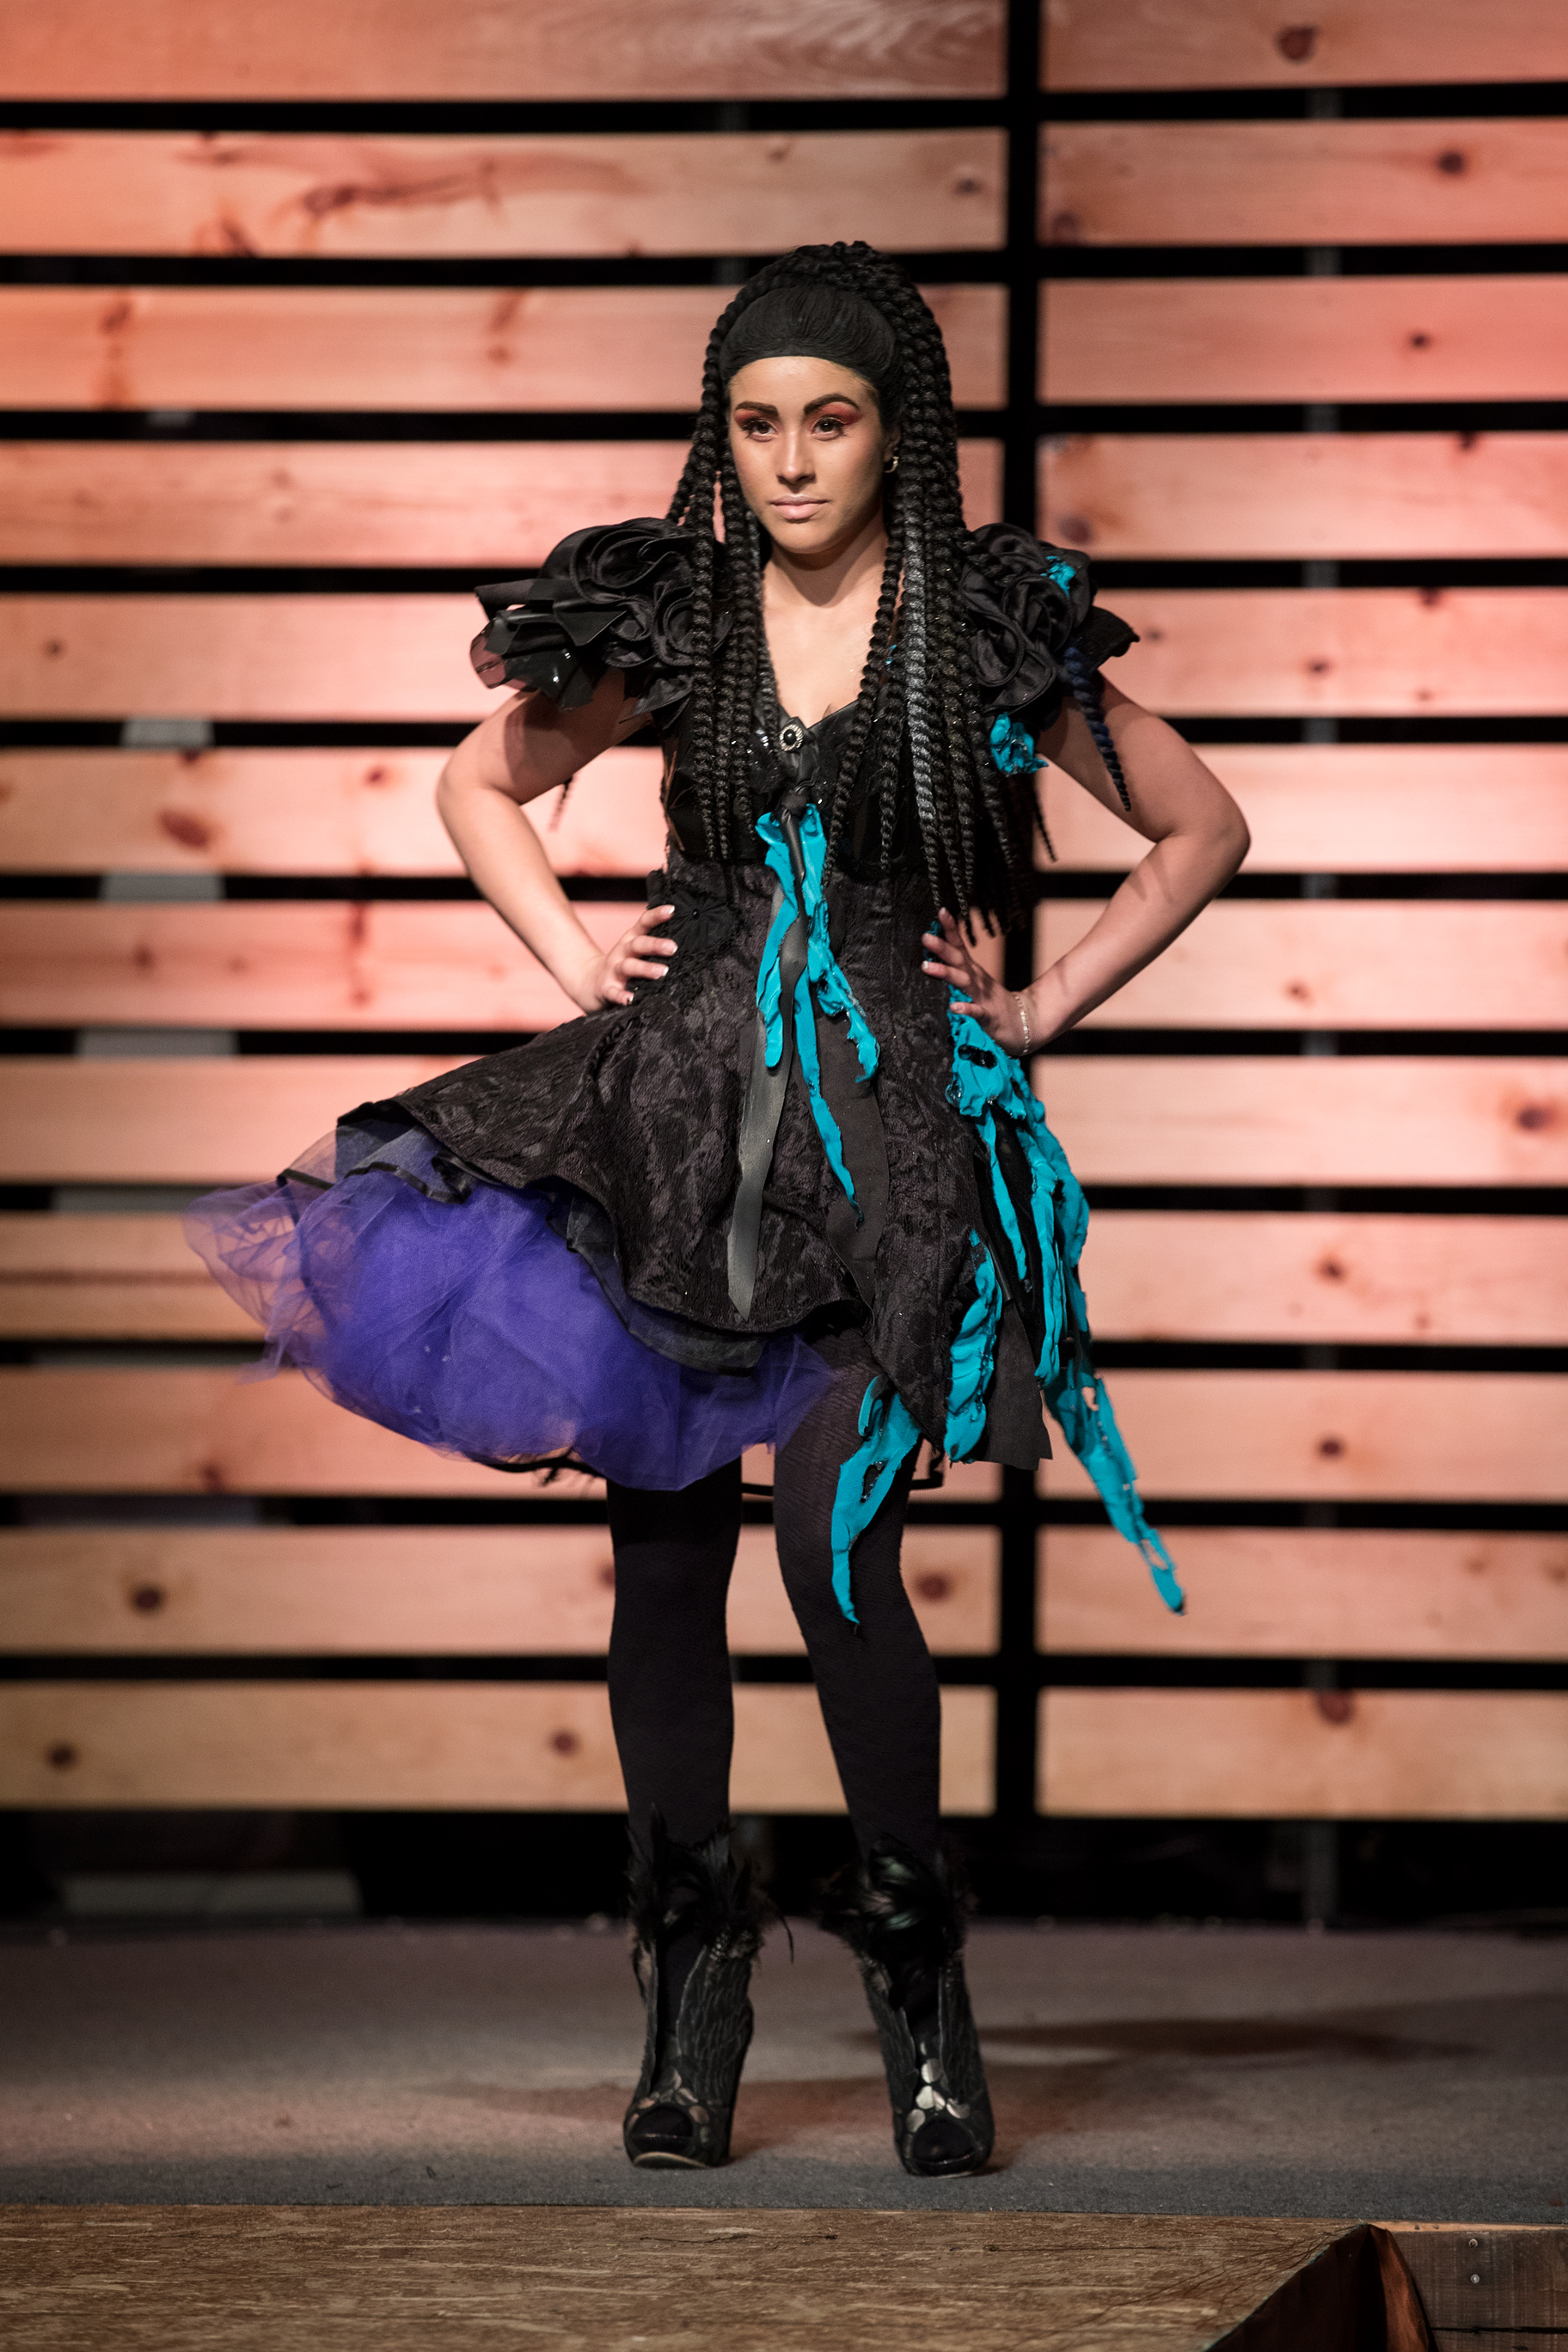 Mission Wear Upcycled Patchwork Fashion Show - 101.jpg